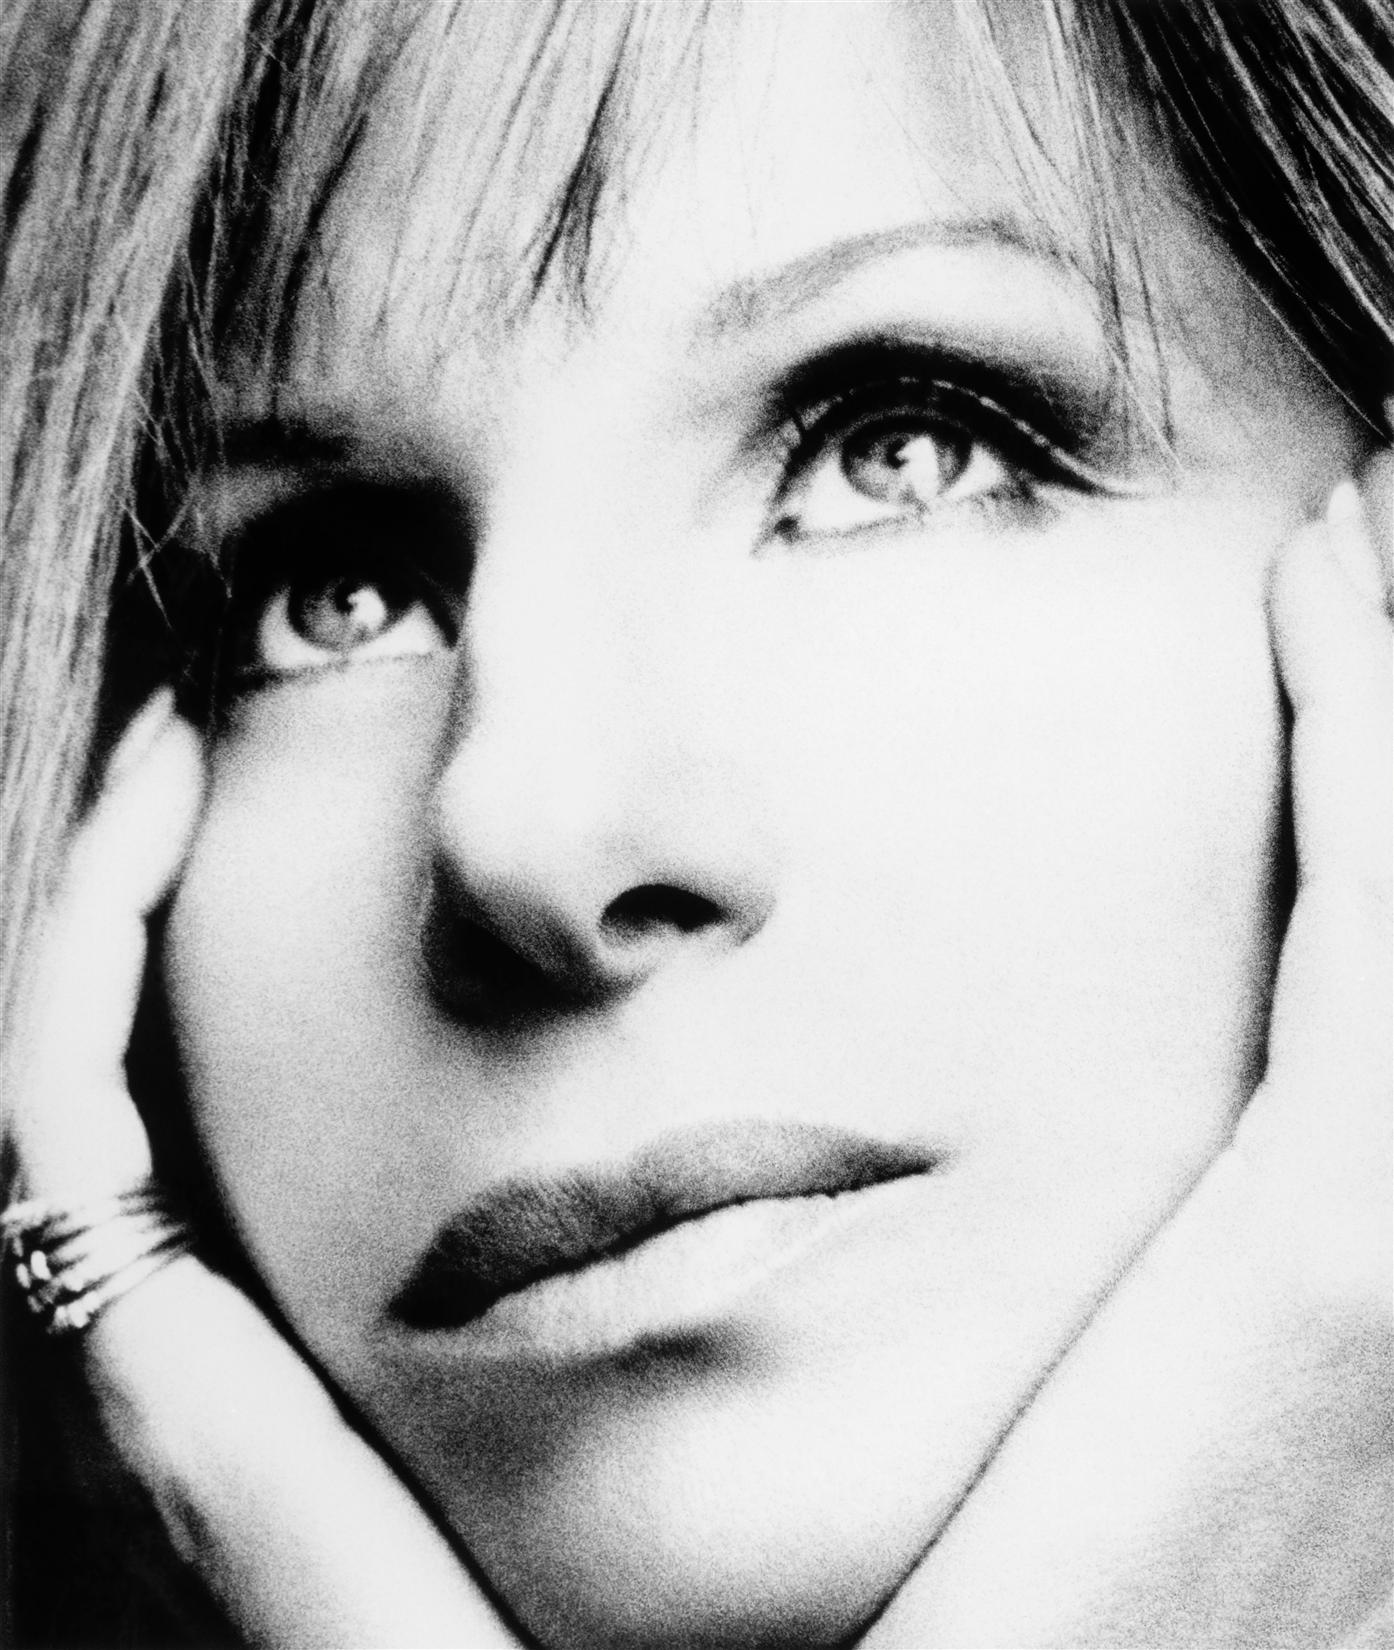 Barbra Streisand photo 46 of 52 pics, wallpapers